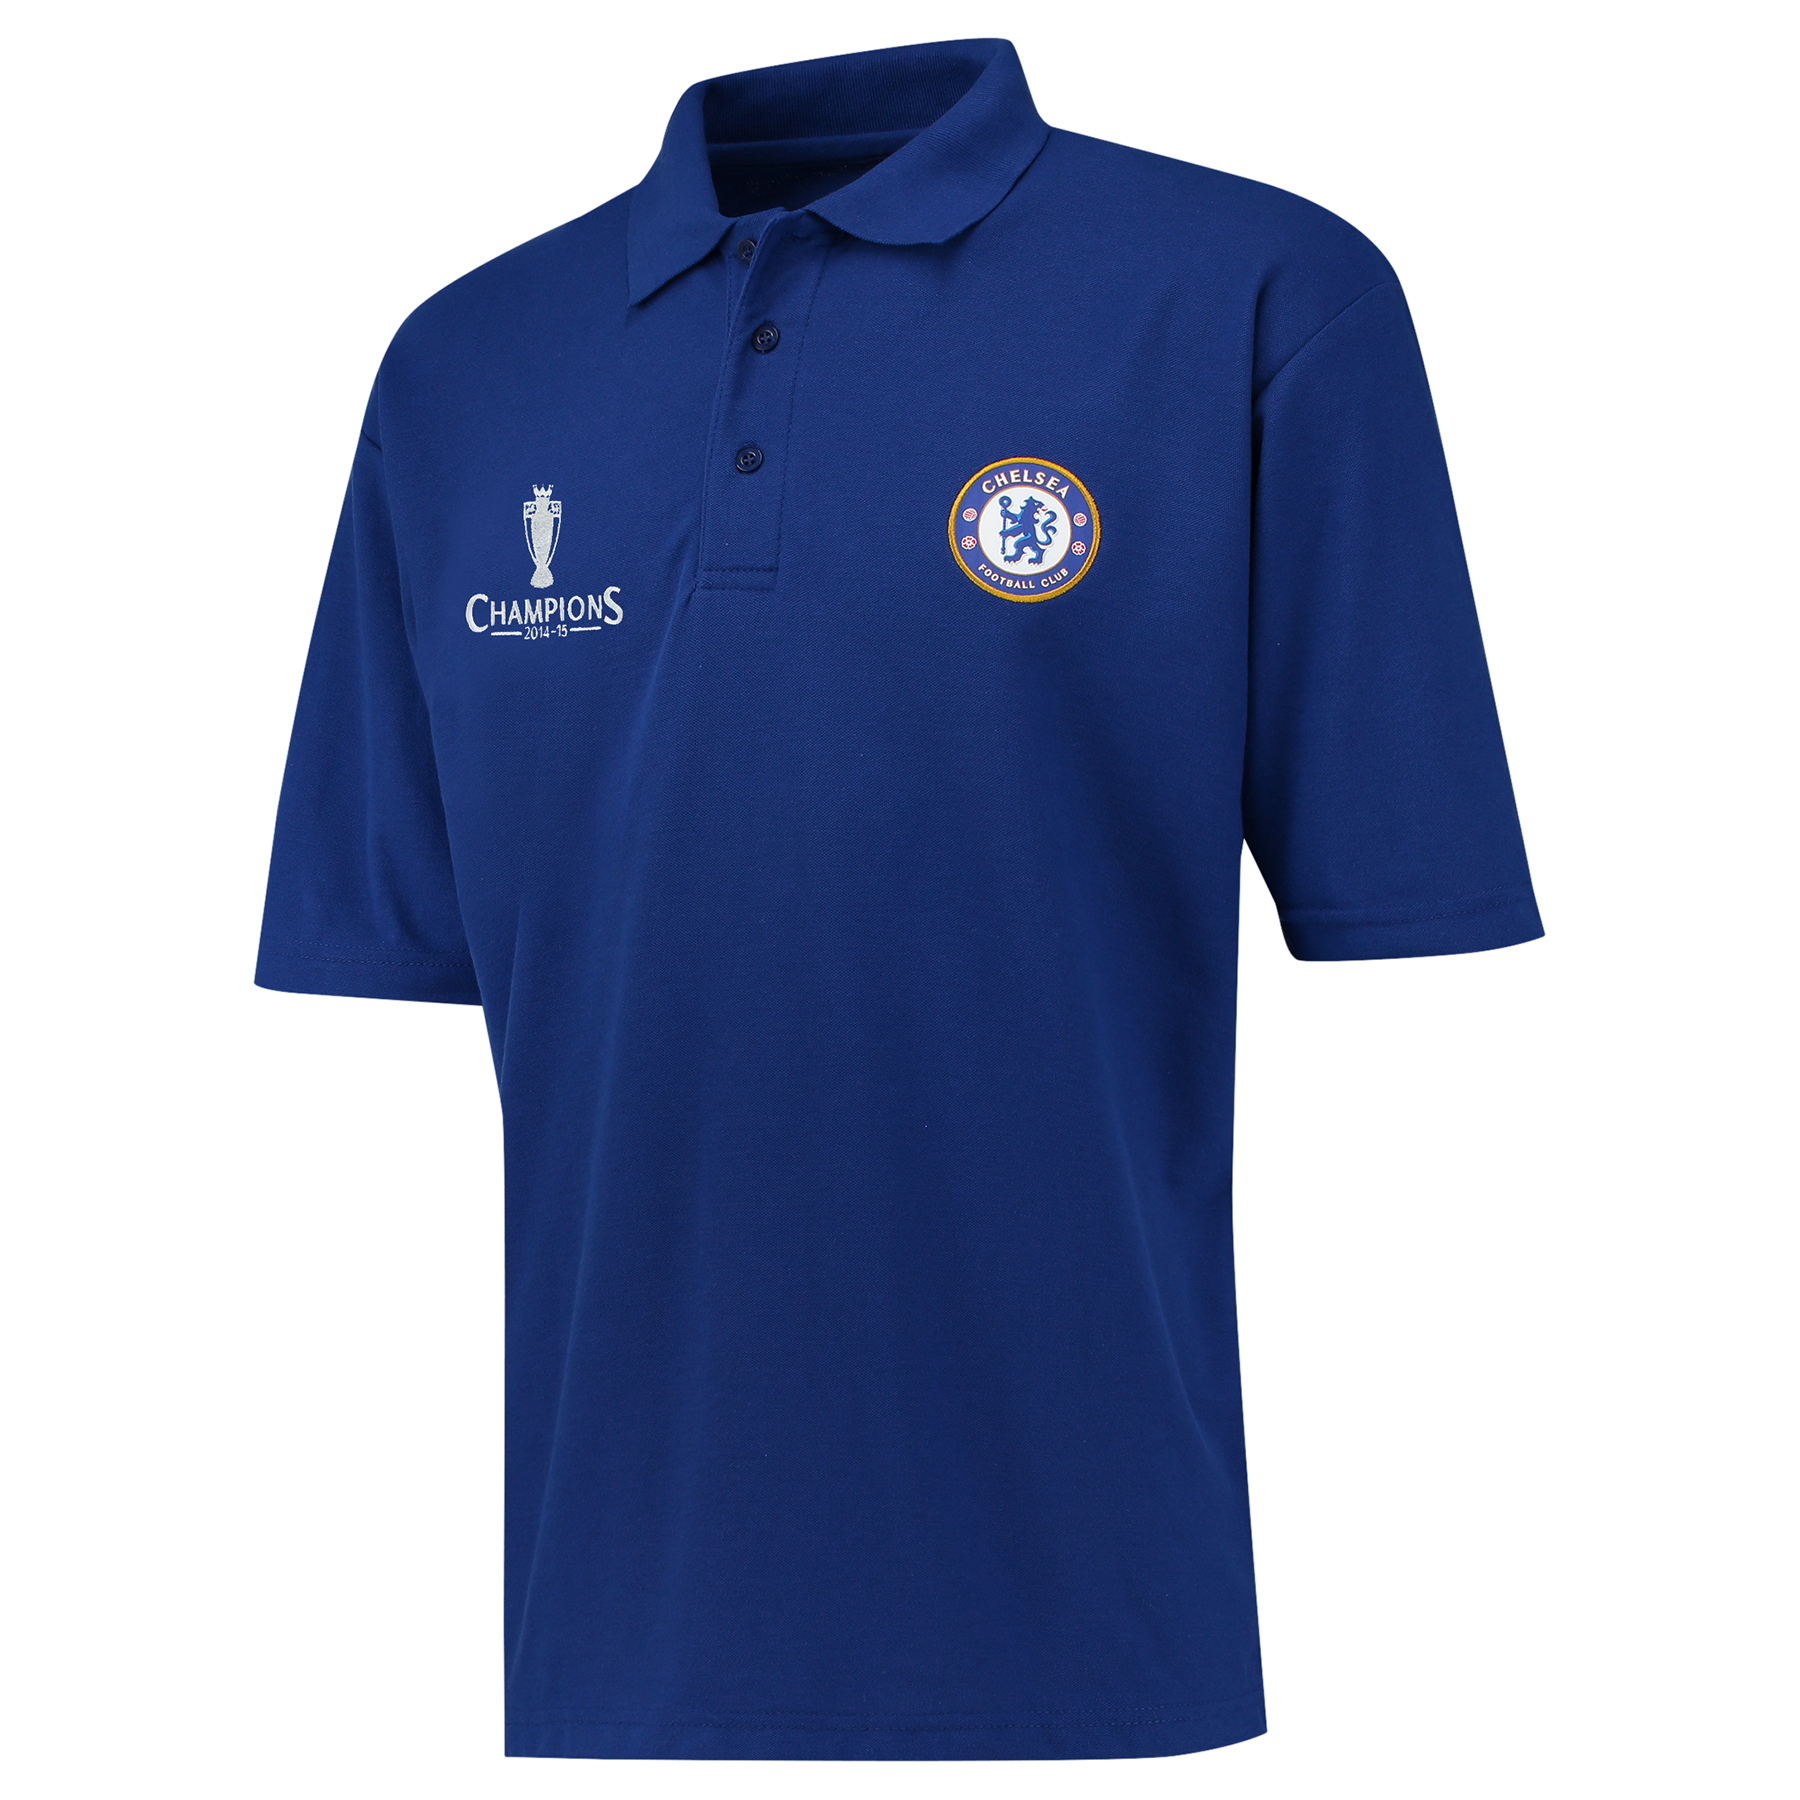 Chelsea 2014/15 Barclays Premier League Champions Polo Shirt - Royal - Mens   Woven club crest badge. Official Barclays Premier League embroidery. 50% Polyester 50% Cotton. Machine washable.